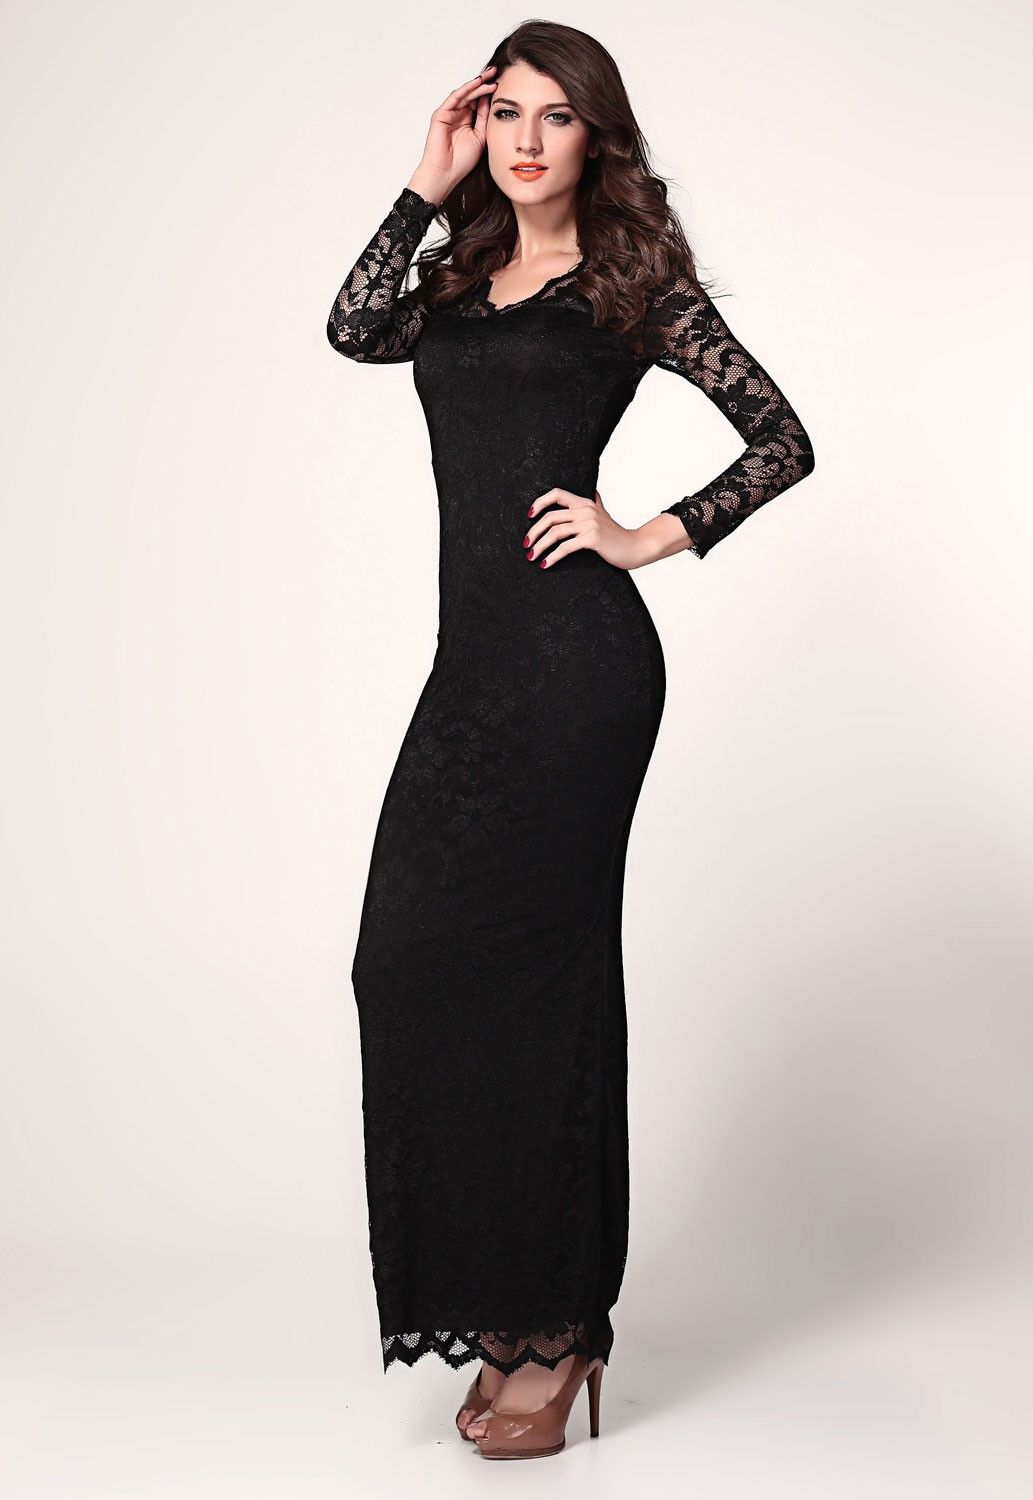 Long Sleeve Plus Size Maxi Dress With Lace Maxi Dresses Designs